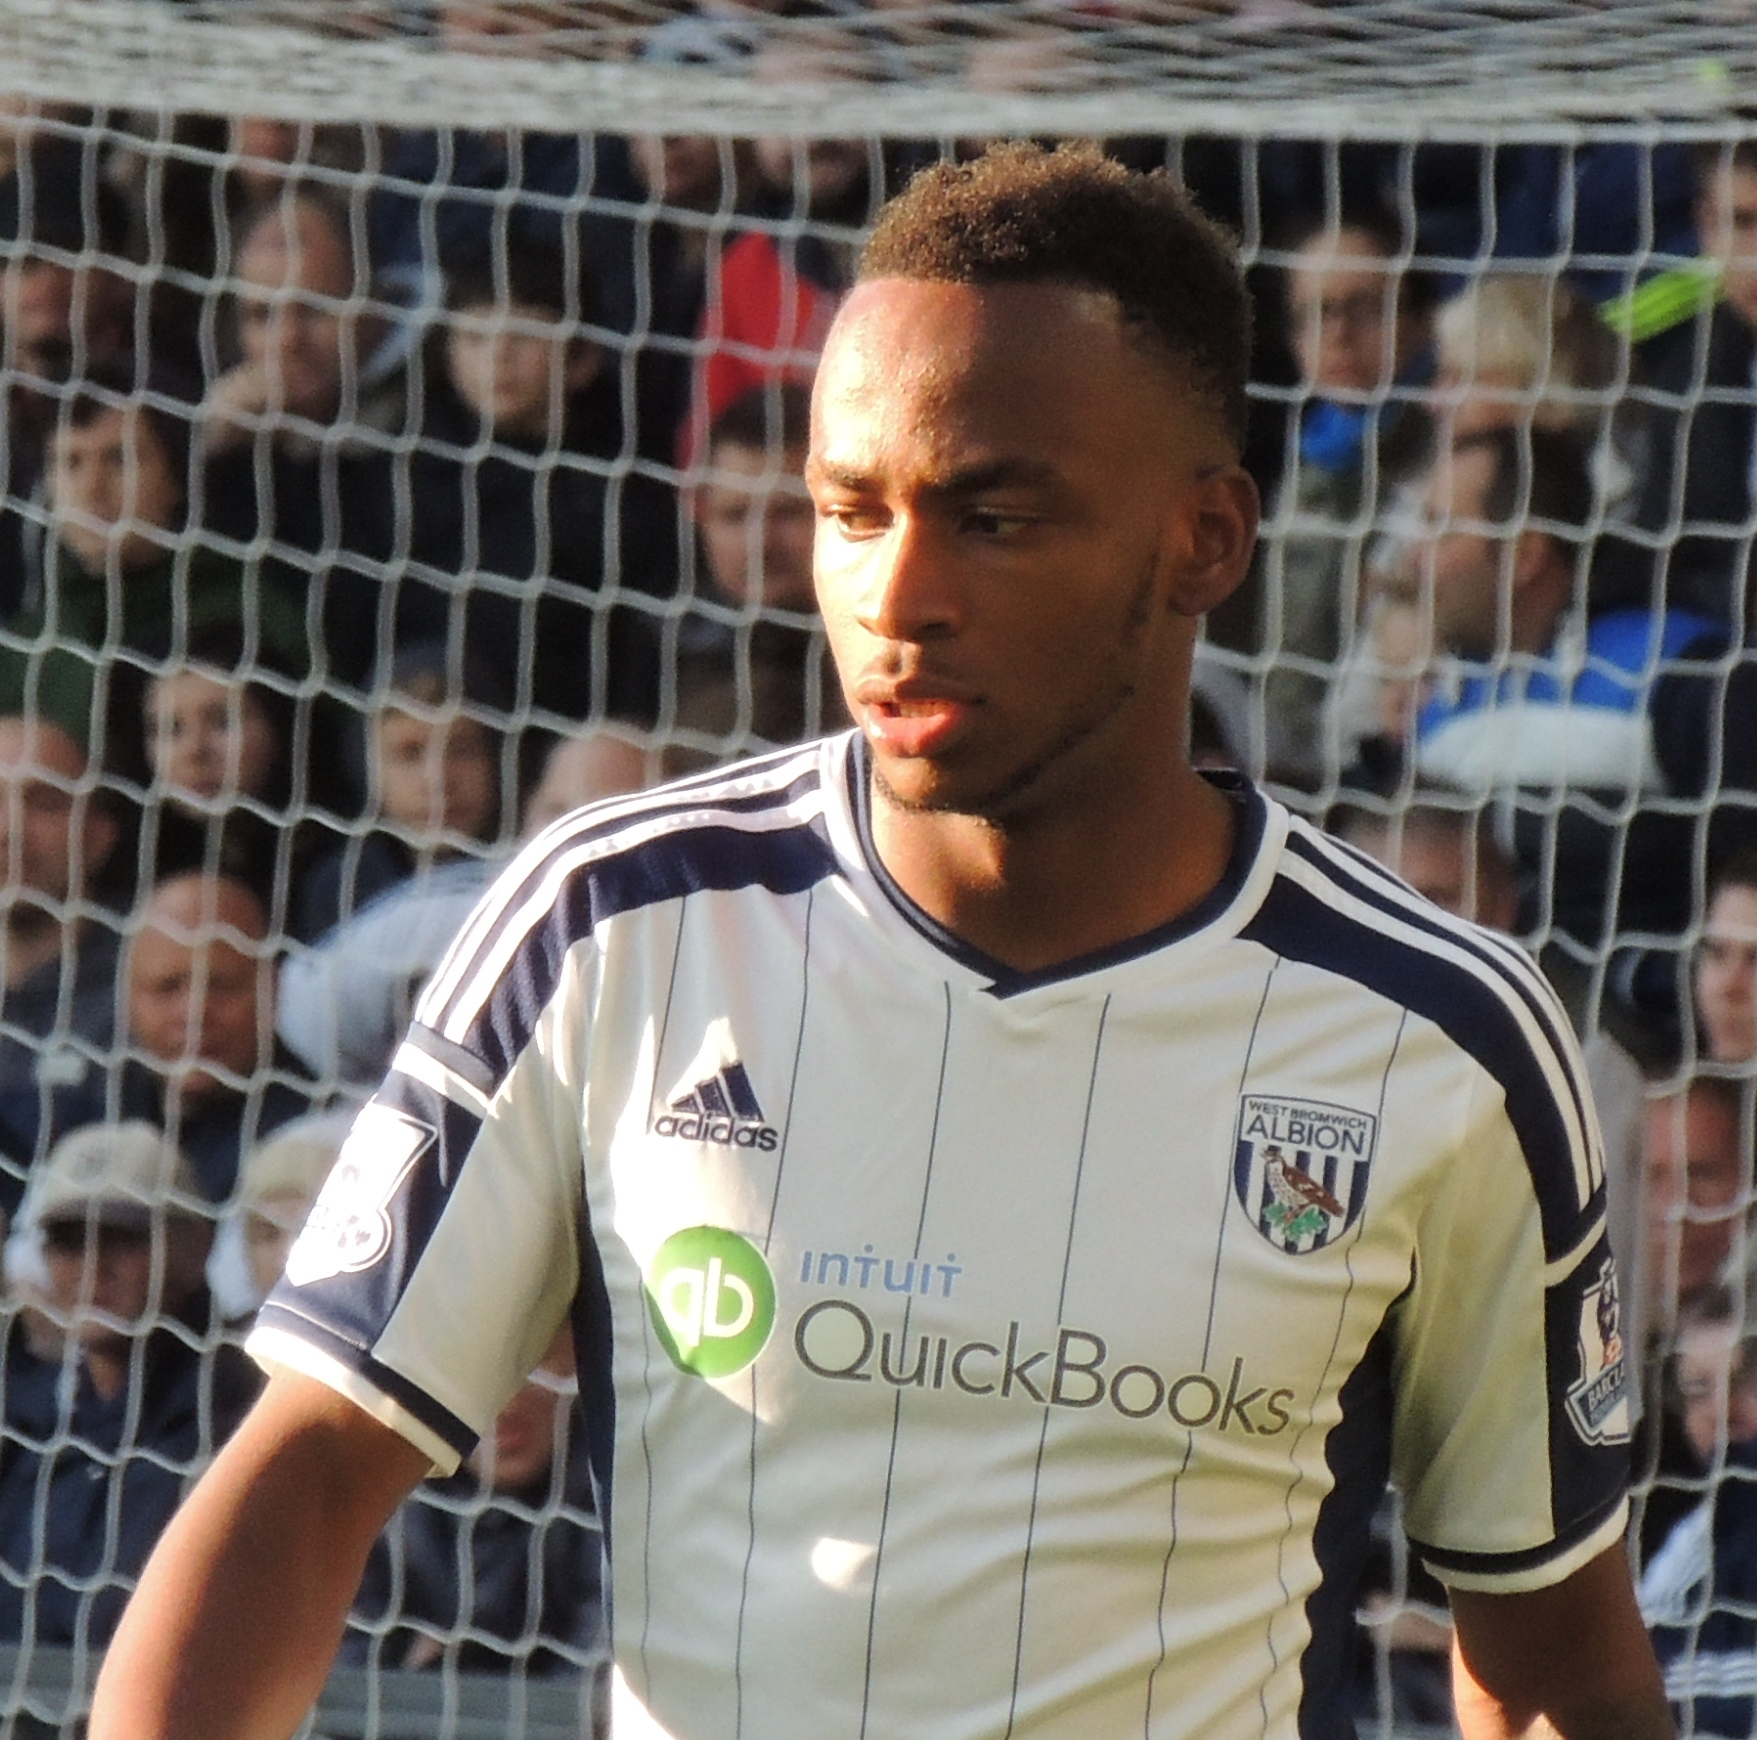 The 25-year old son of father (?) and mother(?) Saido Berahino in 2018 photo. Saido Berahino earned a  million dollar salary - leaving the net worth at 5.7 million in 2018